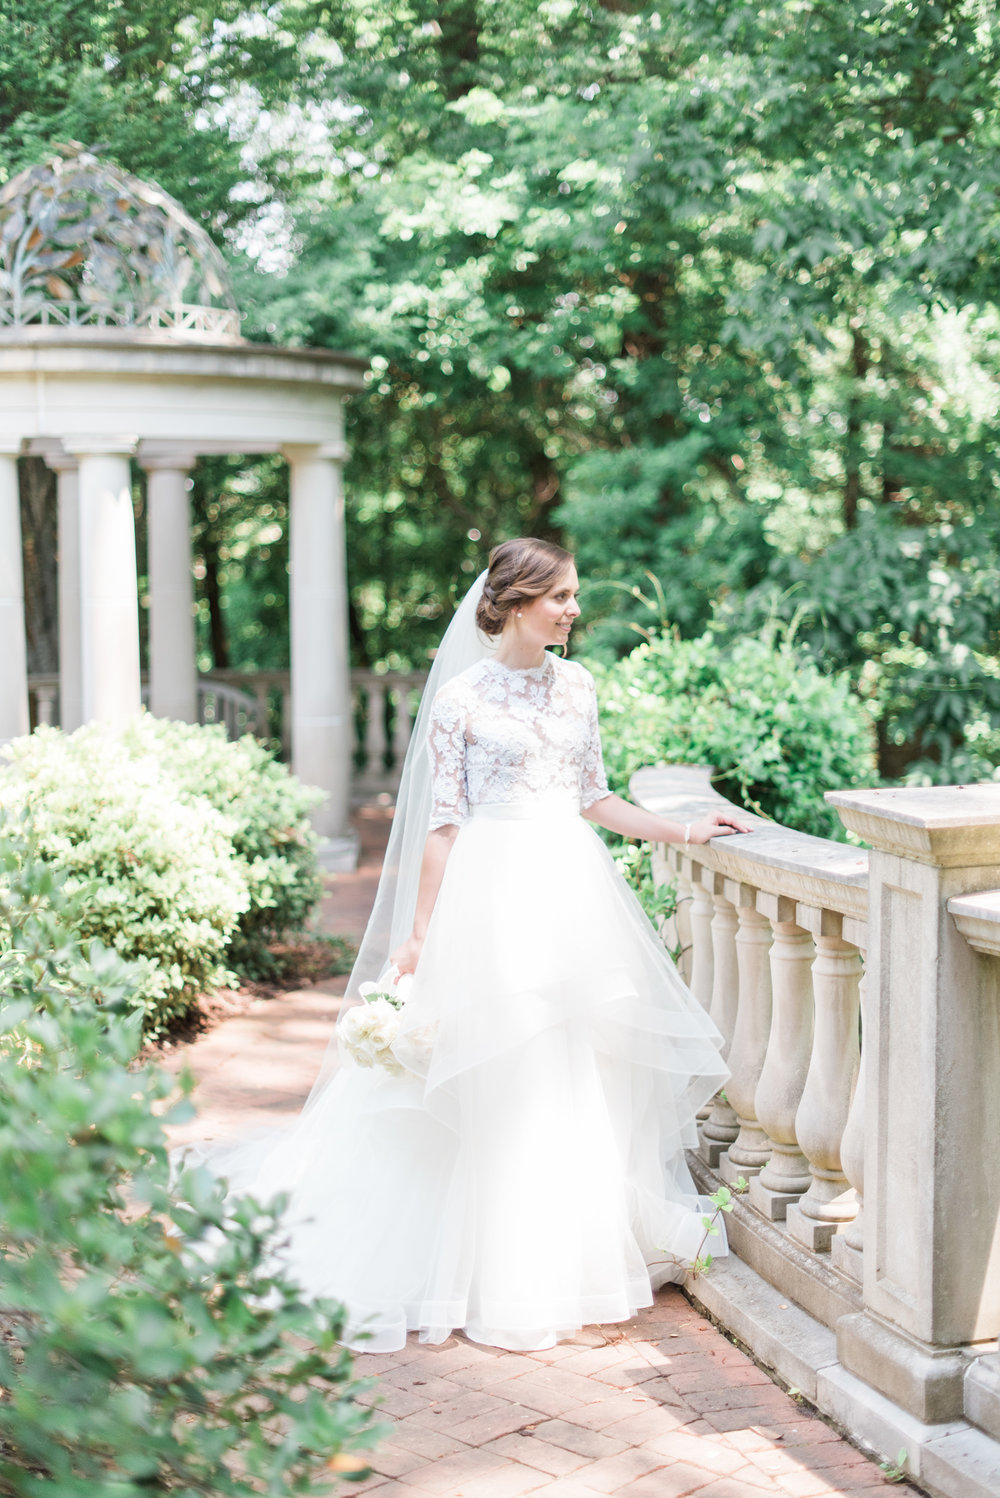 Atlanta Botanical Garden Wedding Photographer Nice Look